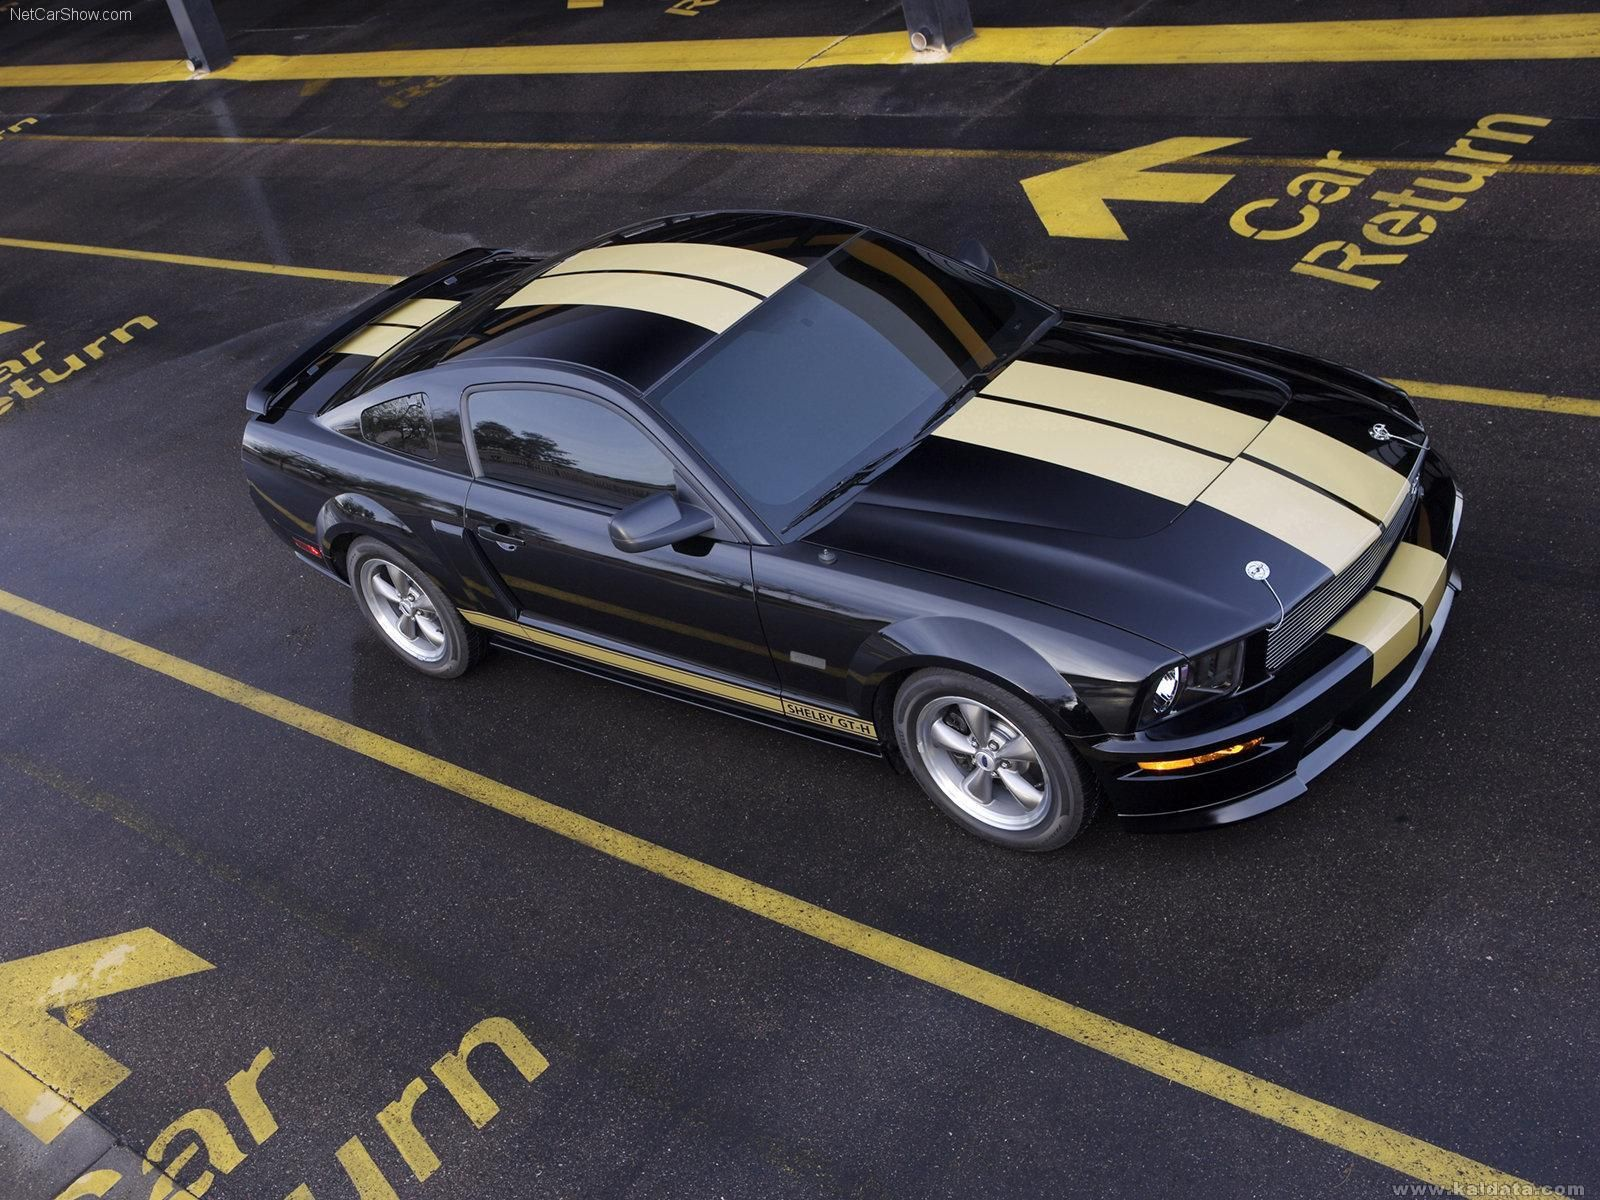 Ford-Mustang_Shelby_GT-H_2006_1600x1200_wallpaper_01.jpg